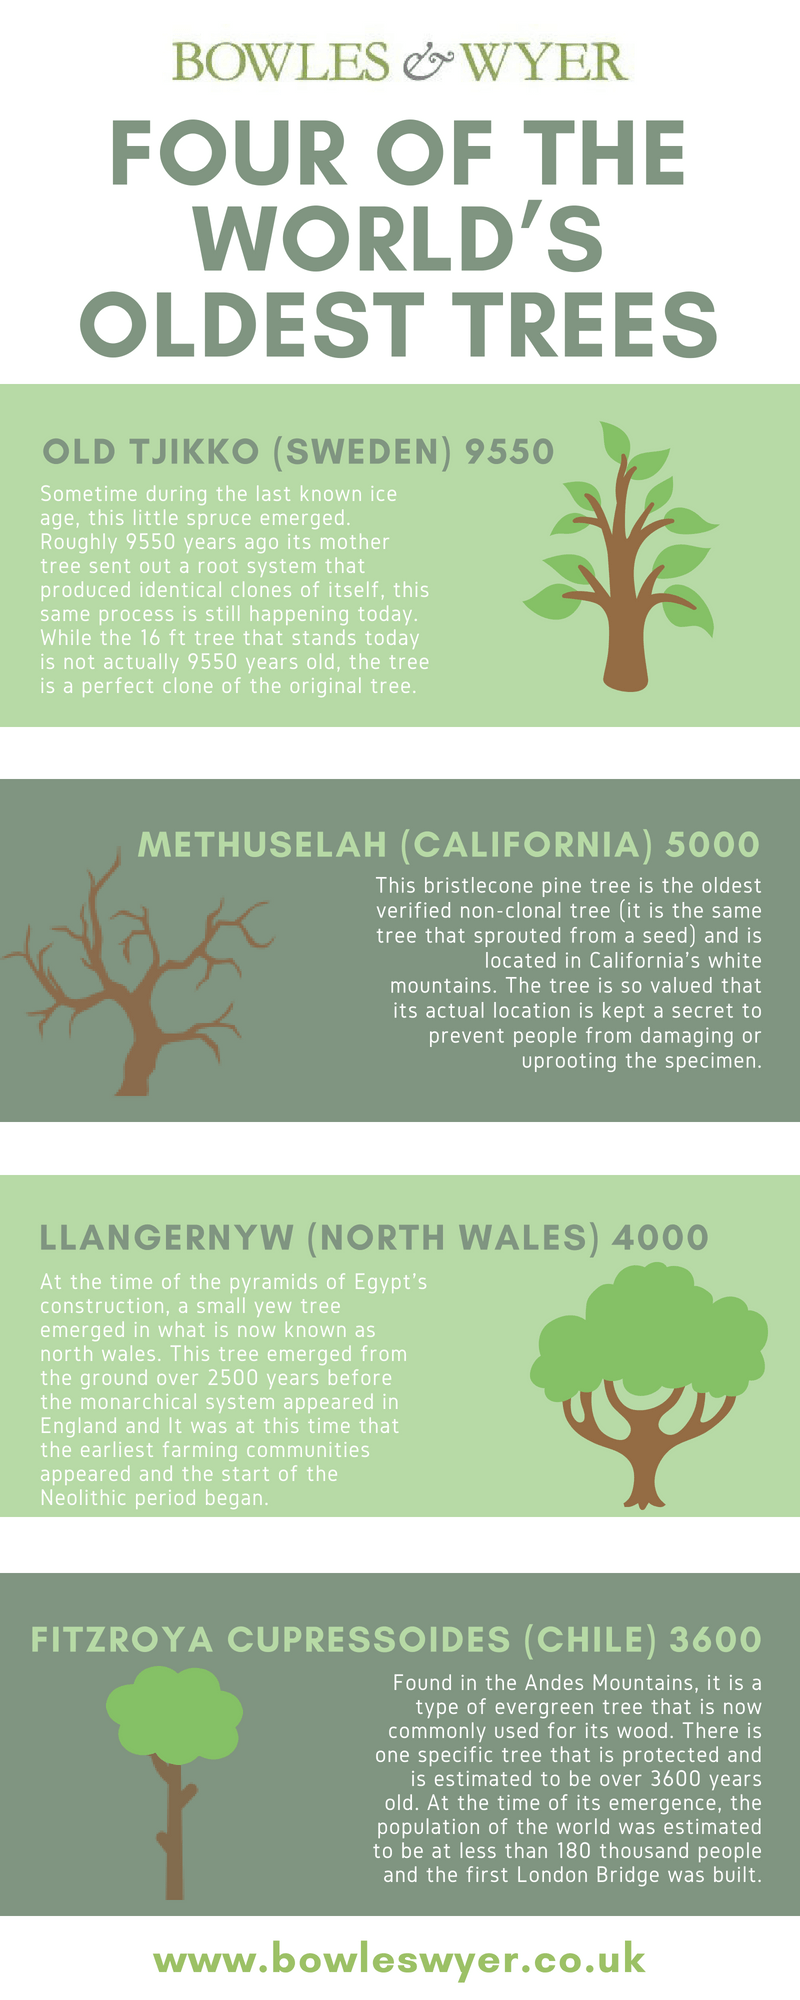 Four of the World's Oldest Trees